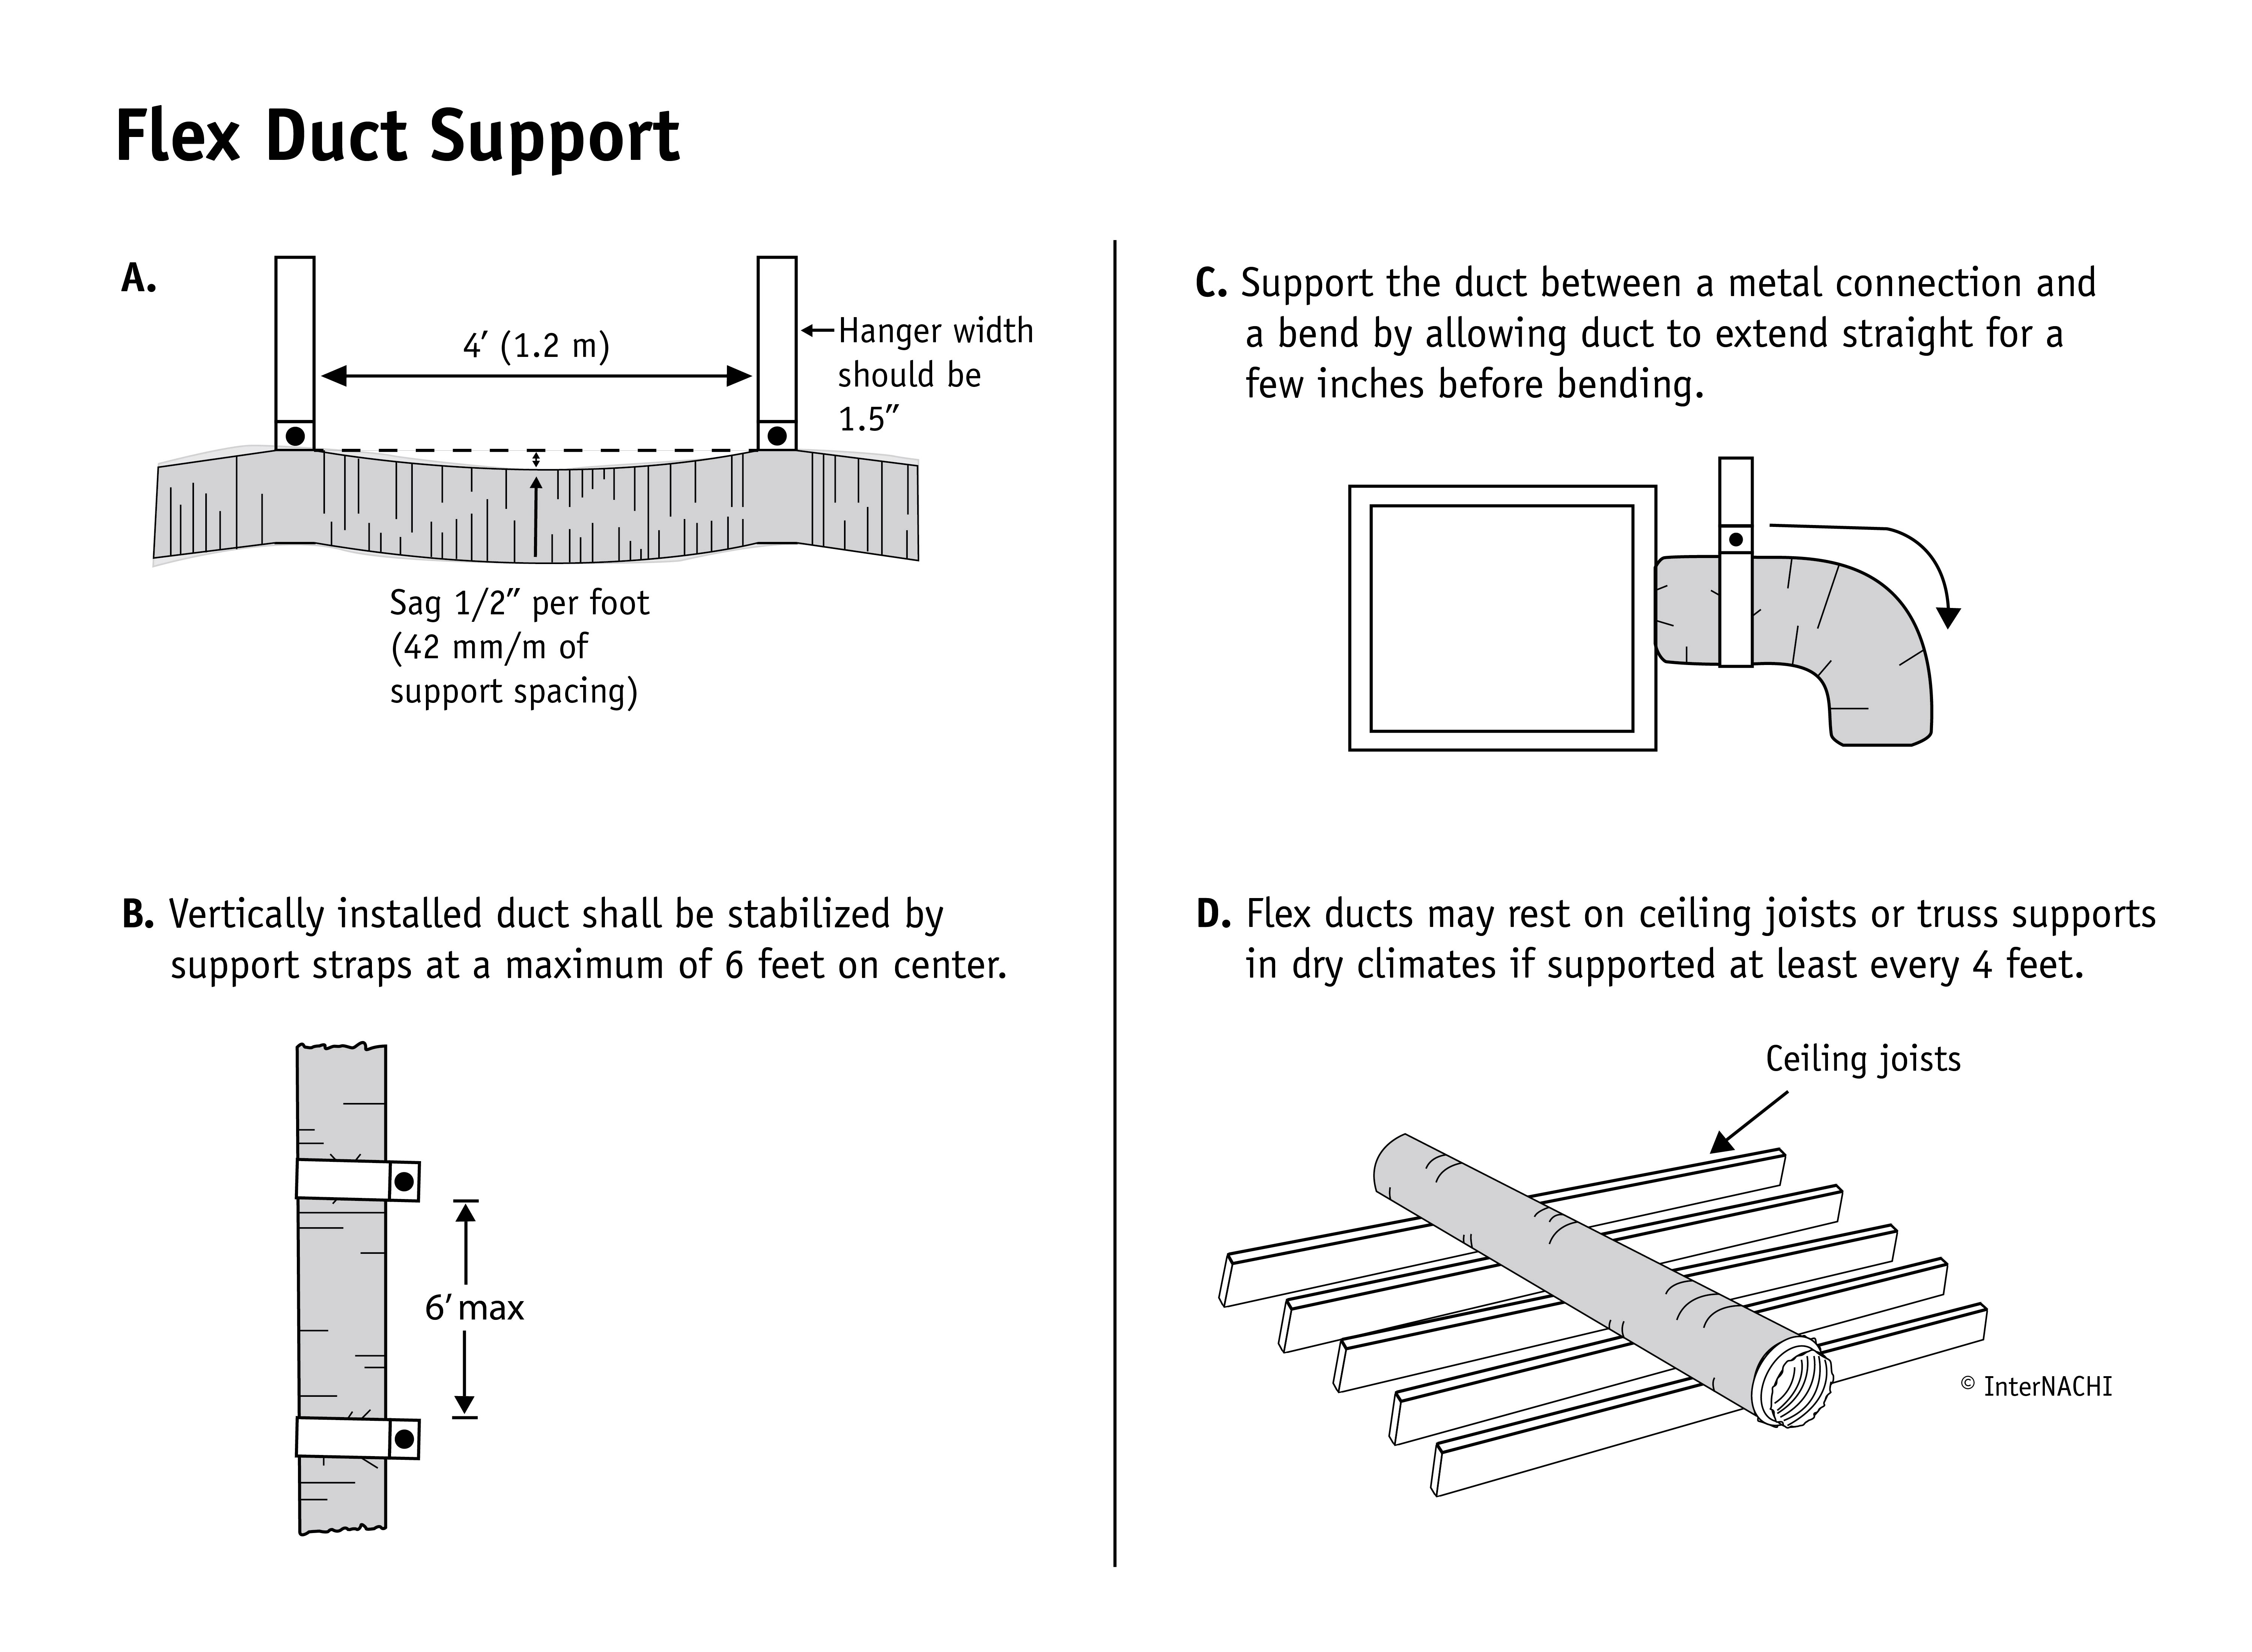 Flex duct support.